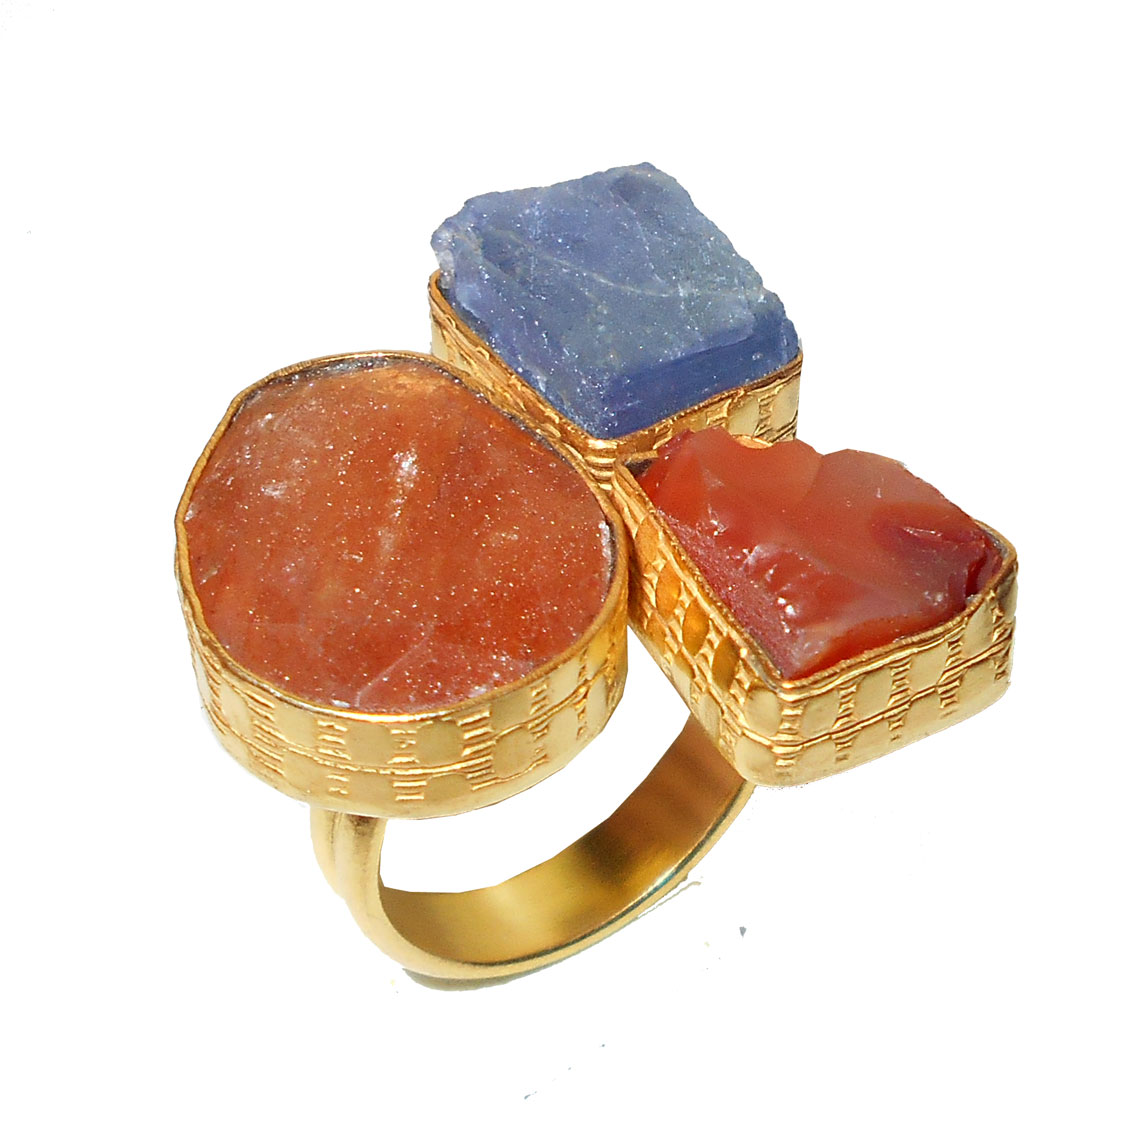 Bio Rutile Tanzanite Carnelian D Rbr932 Chunky Style Fashion Ring Raw Gemstone Rings Wholesale